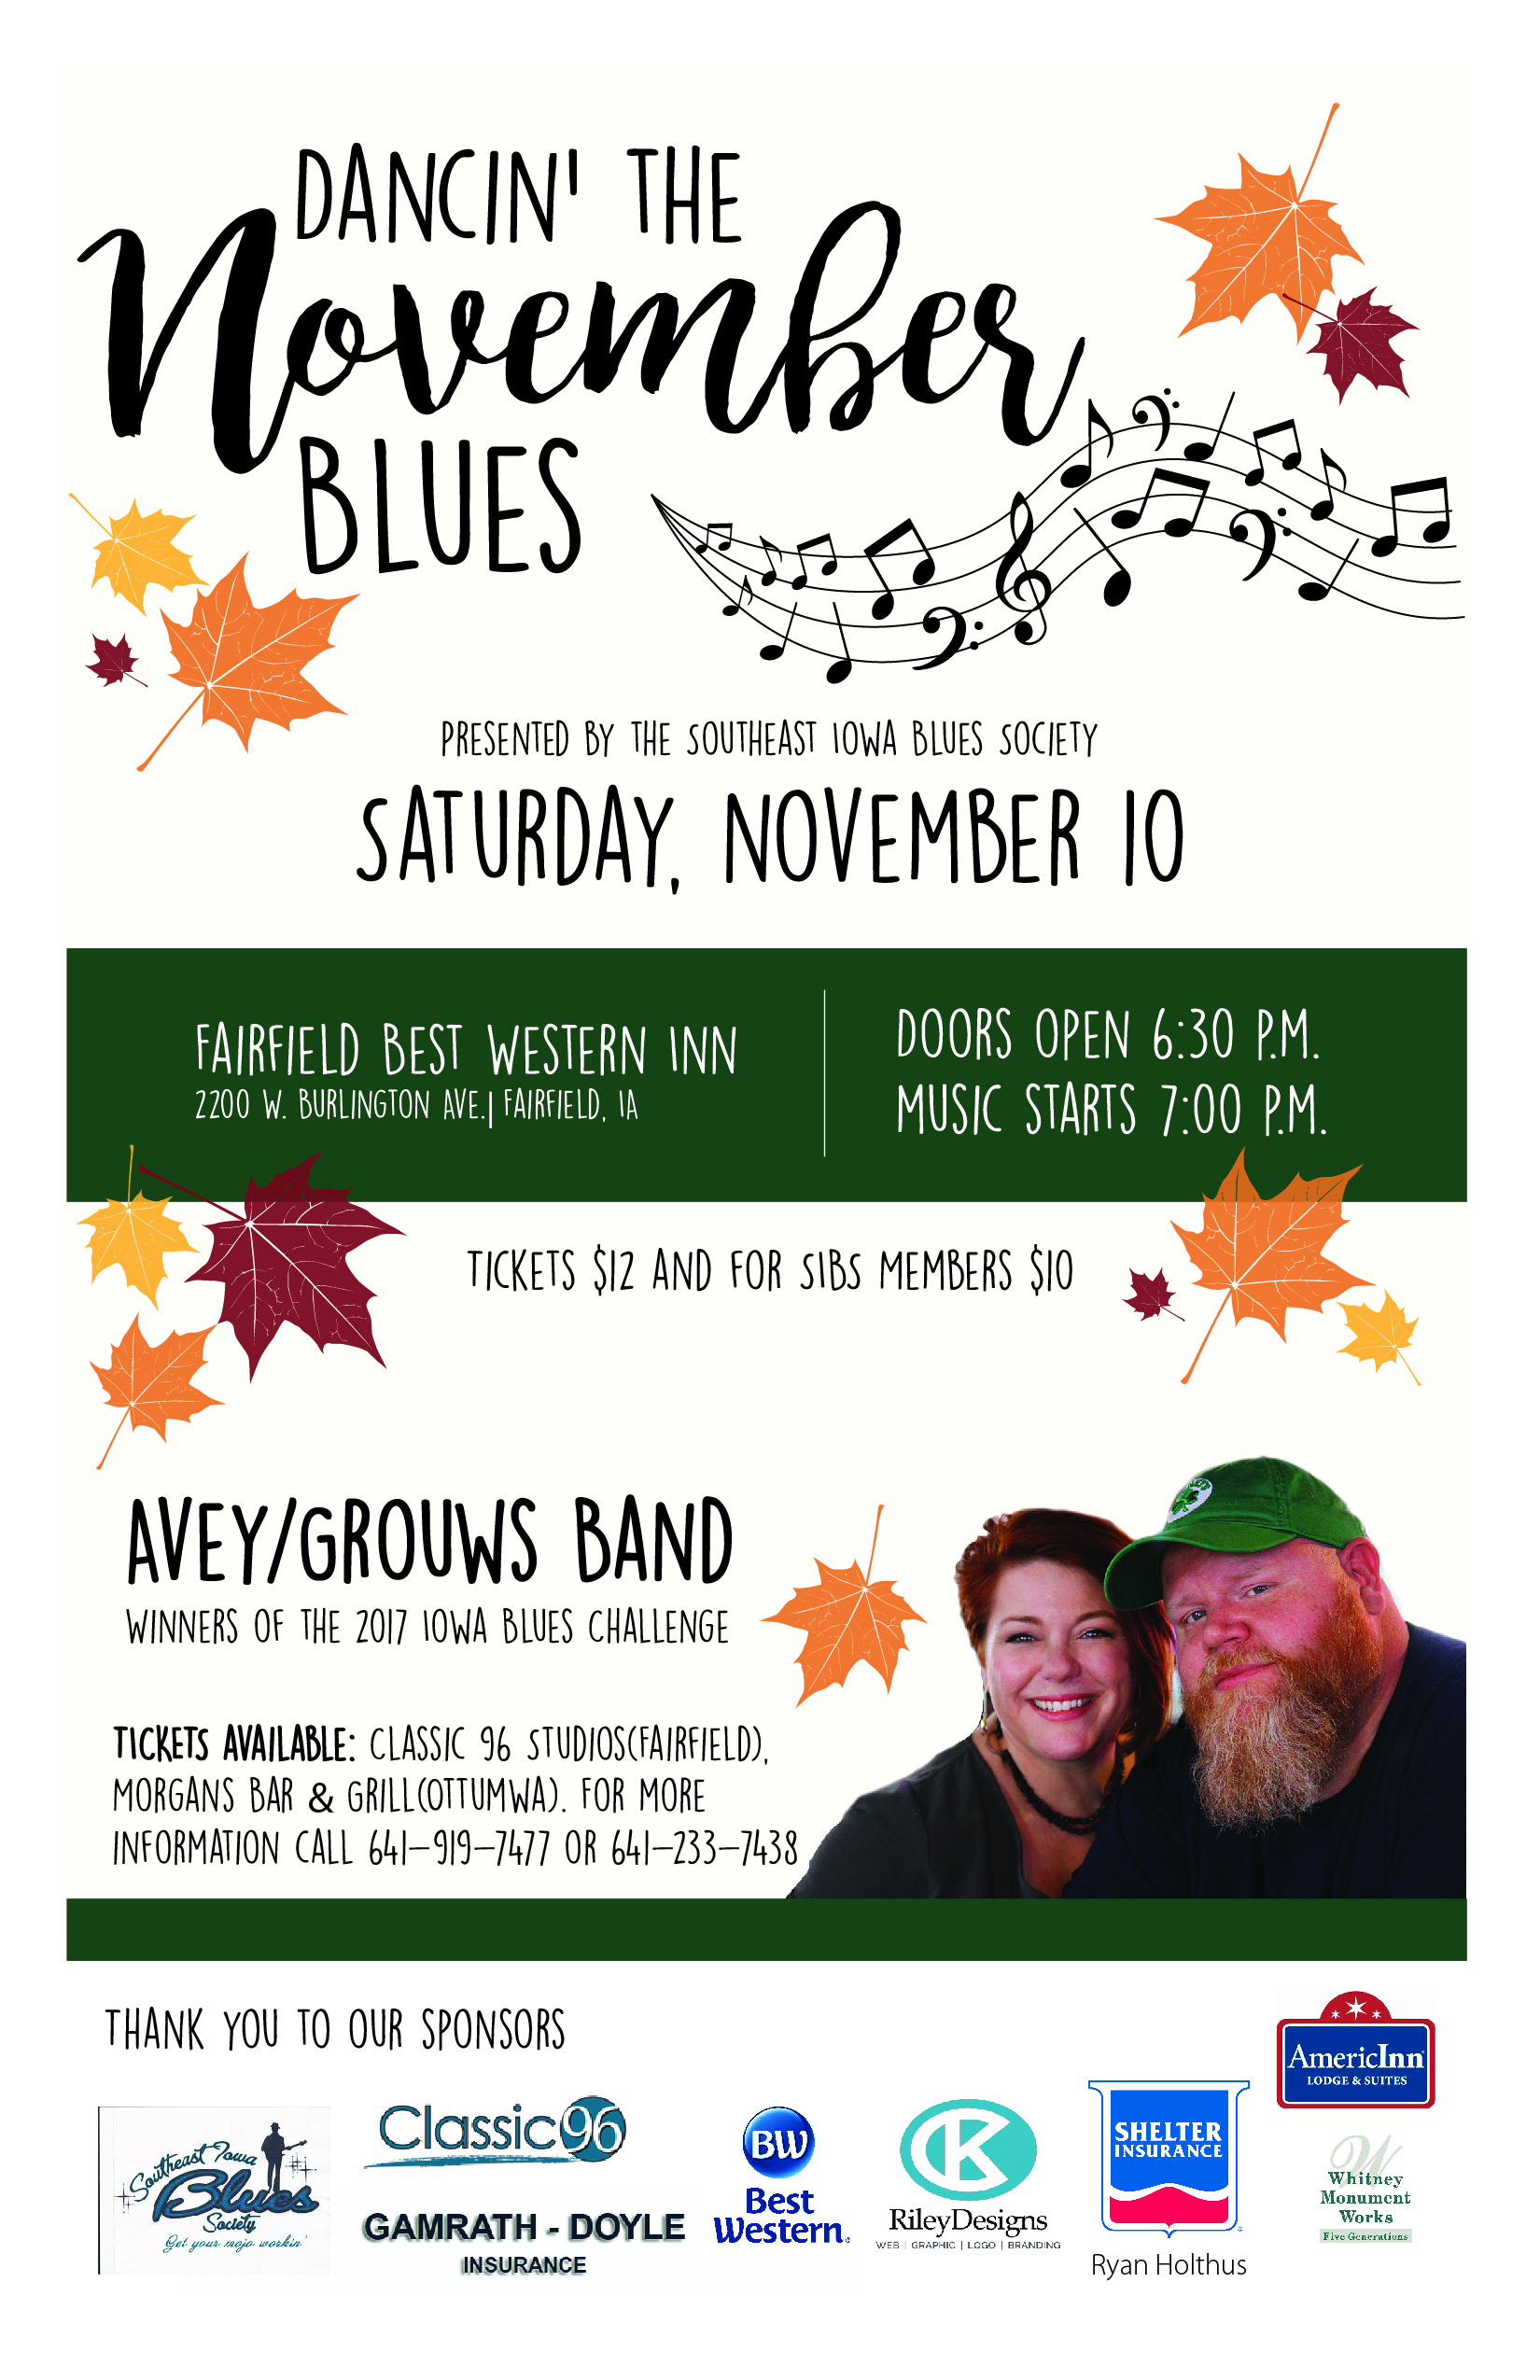 Bezaubernd November Blues Beste Wahl Featuring The Avey Grouws Band, At The